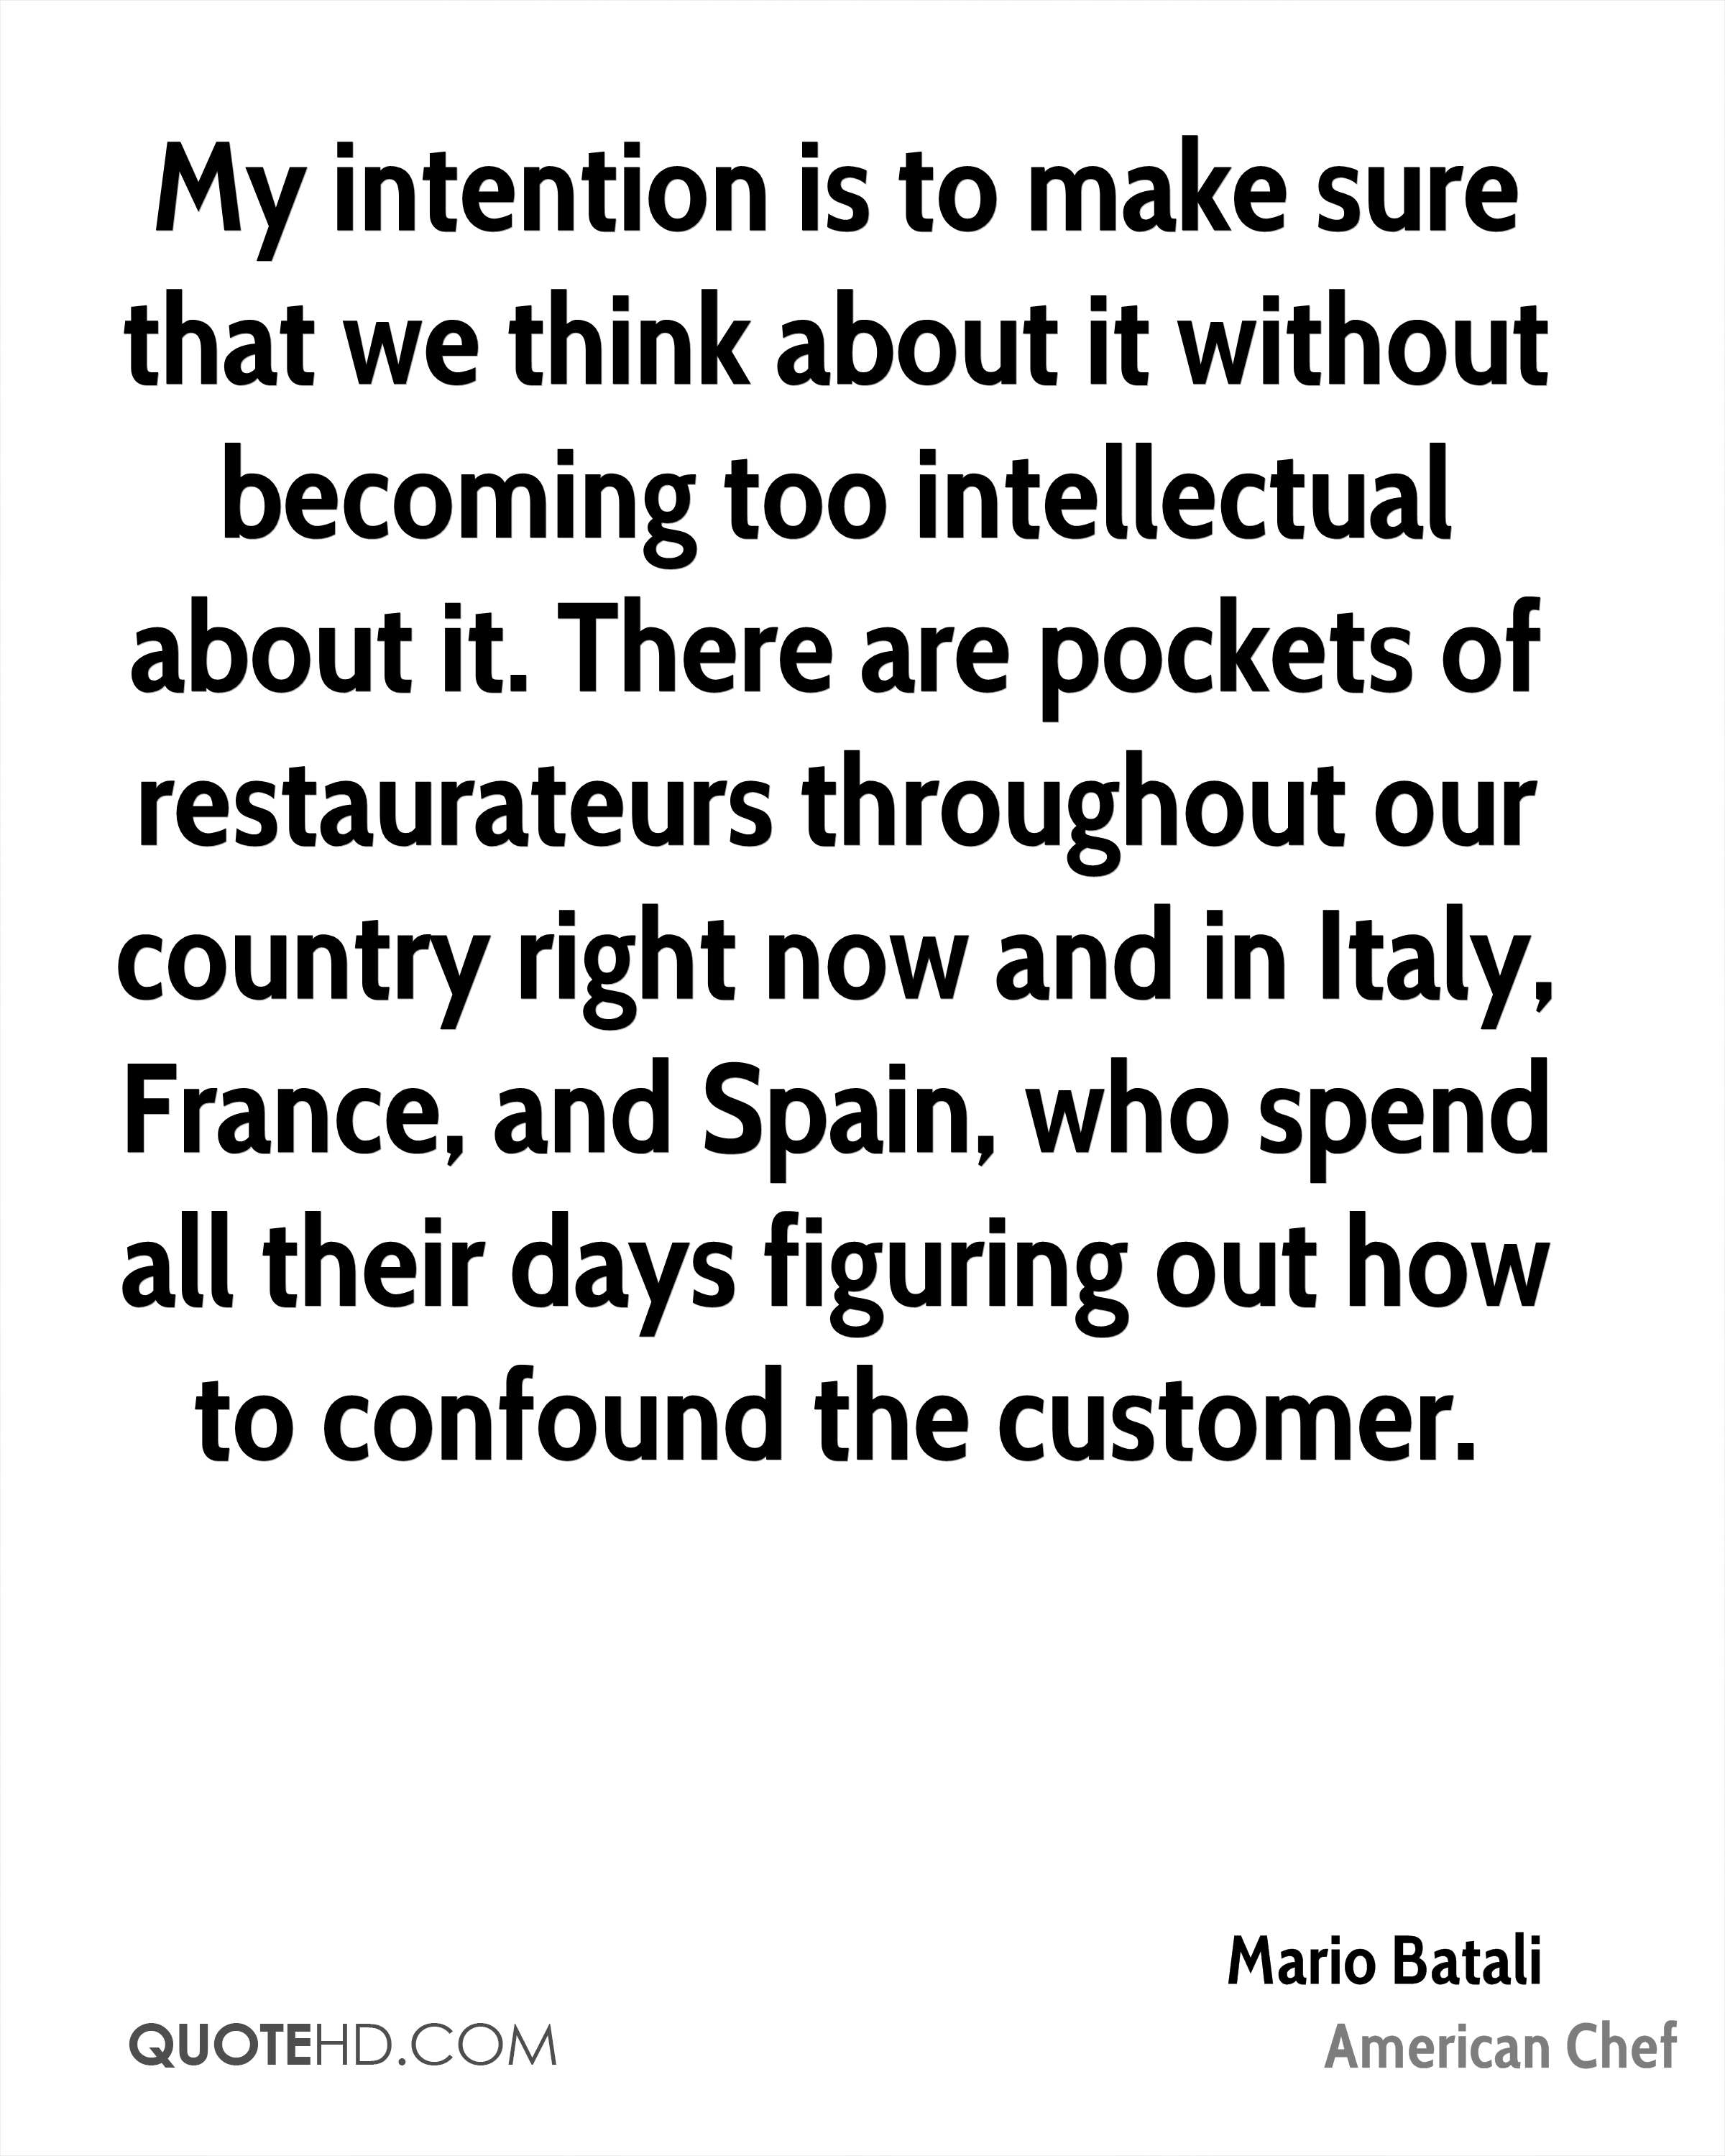 My intention is to make sure that we think about it without becoming too intellectual about it. There are pockets of restaurateurs throughout our country right now and in Italy, France, and Spain, who spend all their days figuring out how to confound the customer.